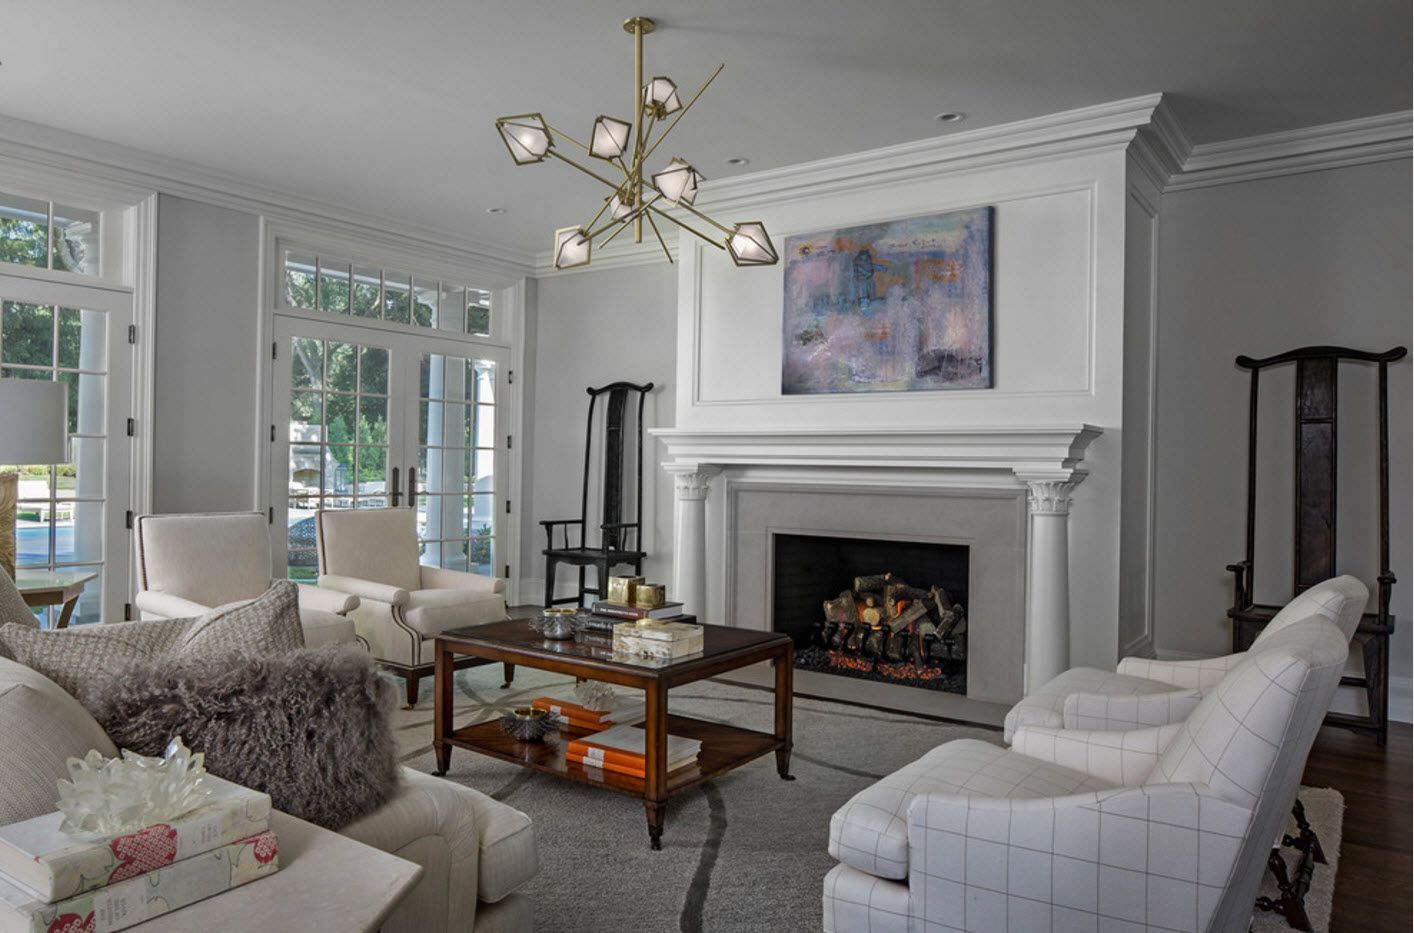 Classic interior in the modern house with fireplace